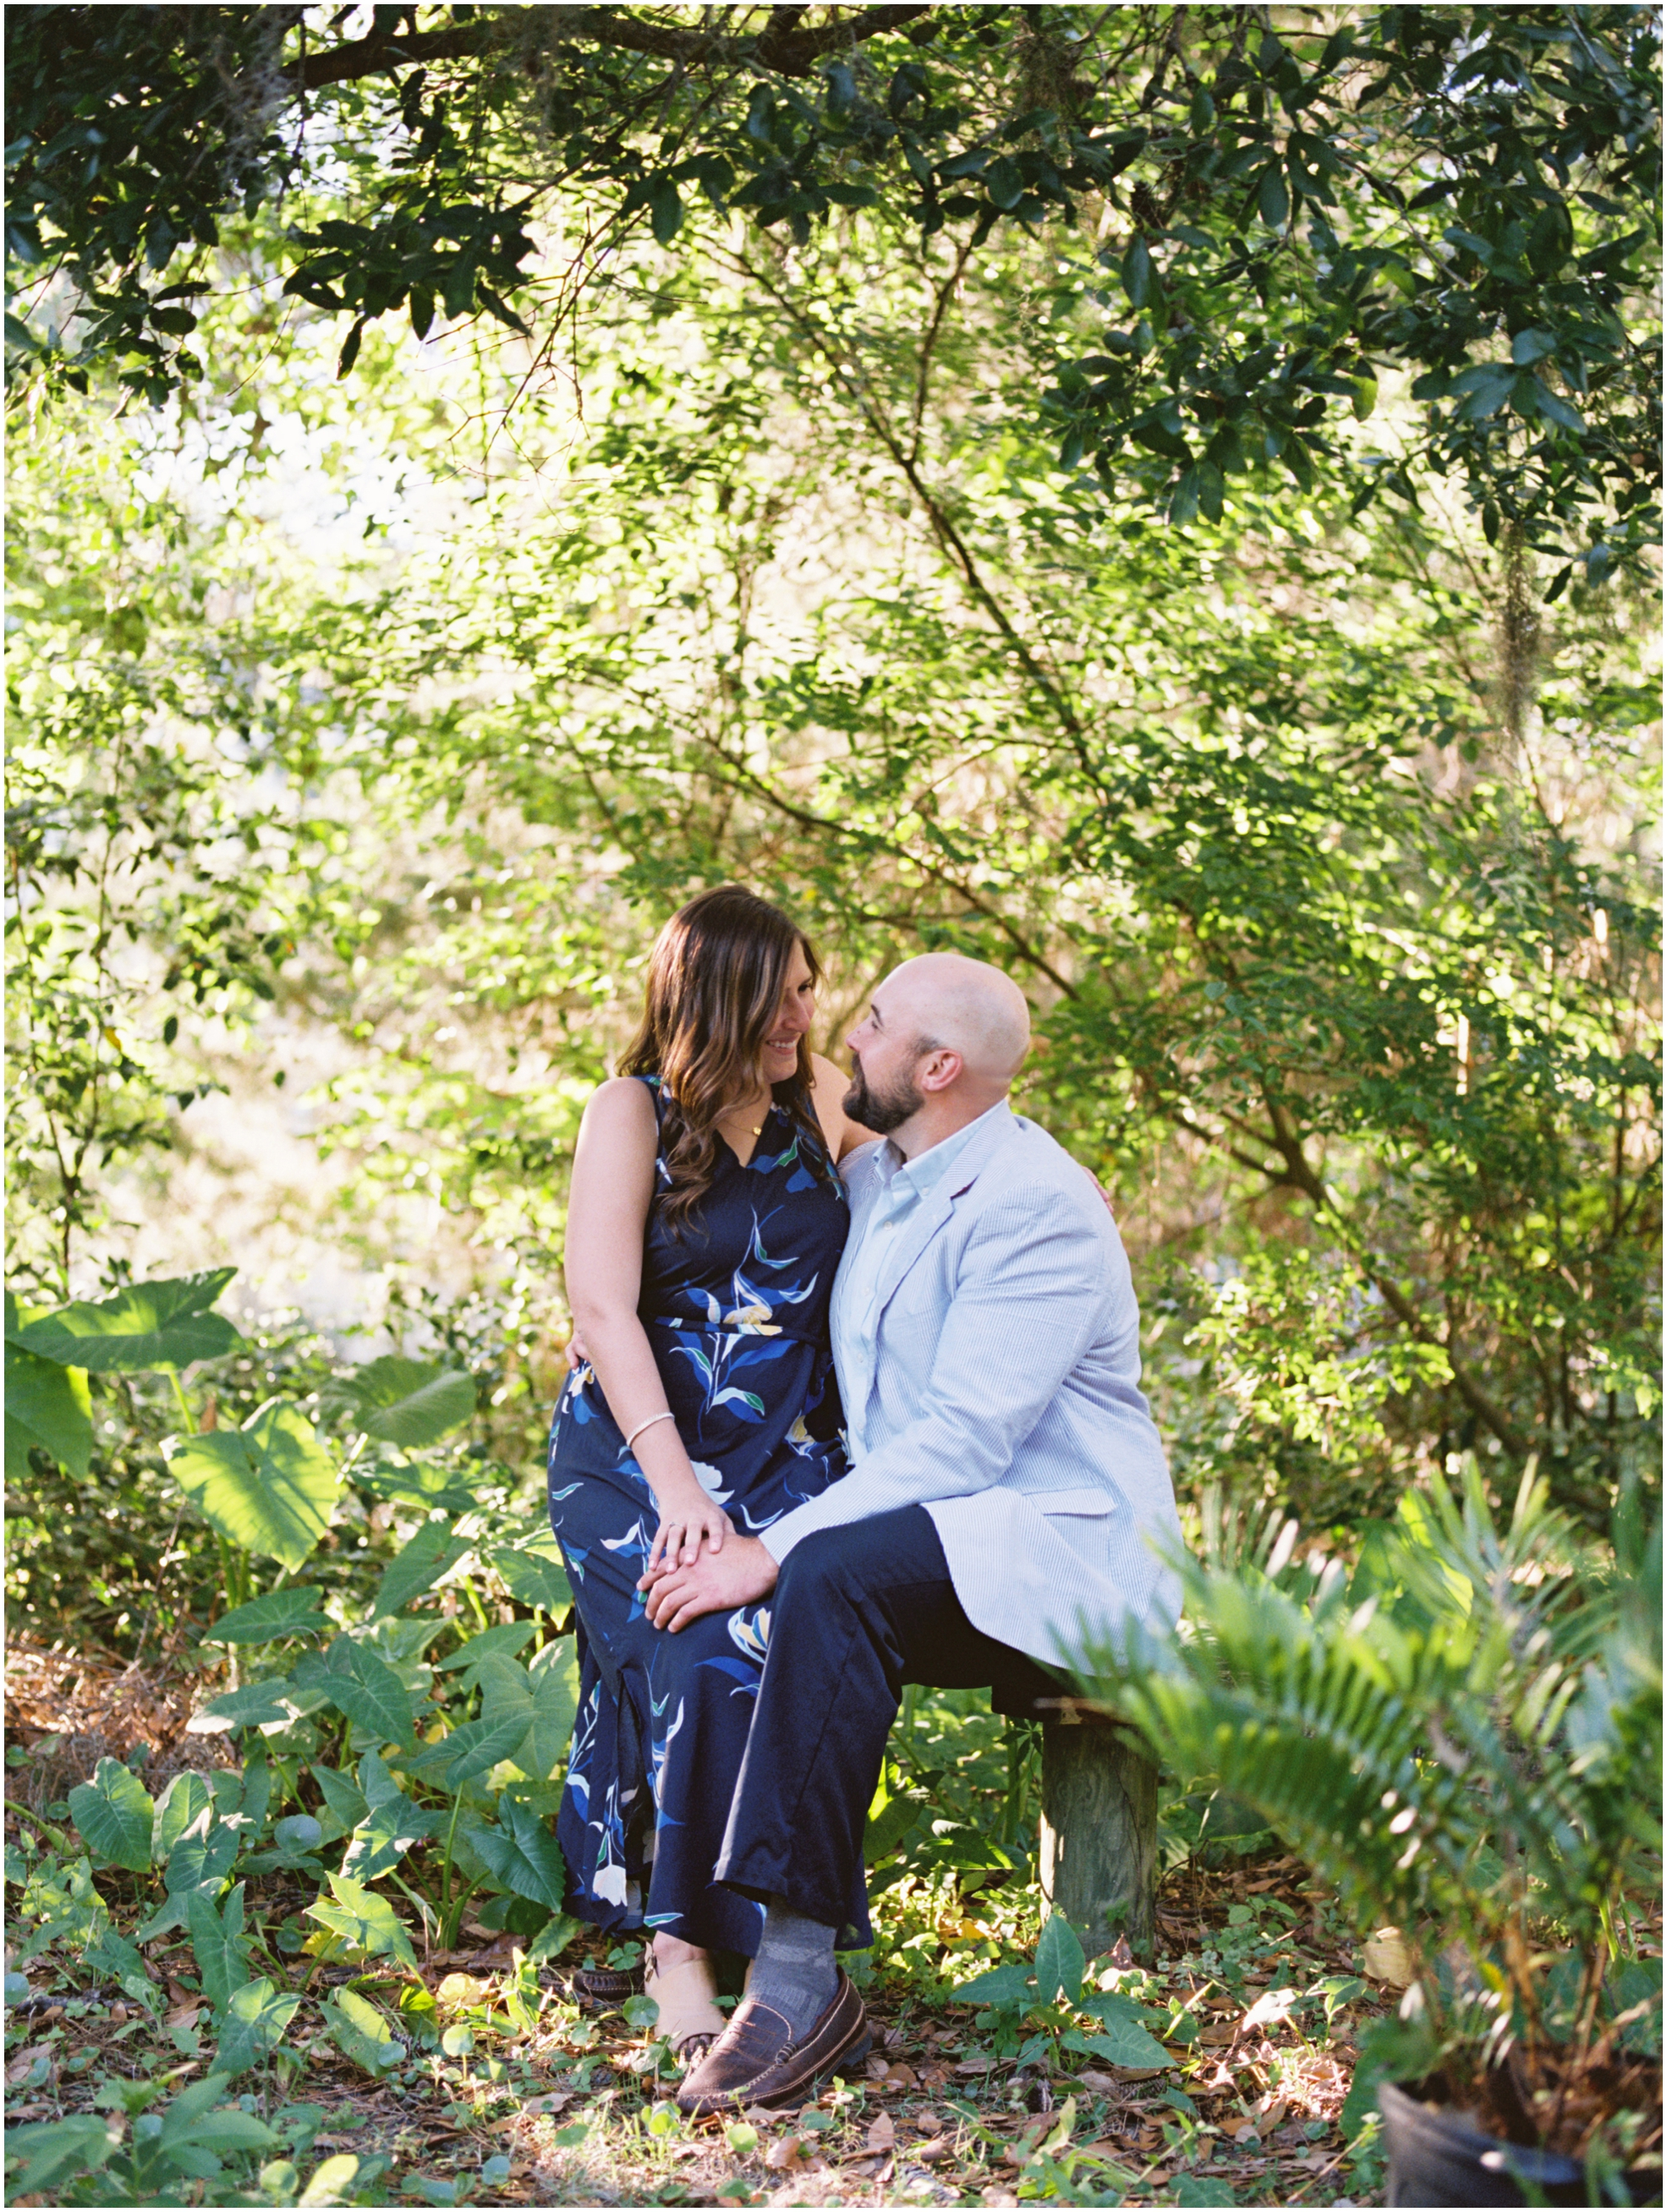 Lisa Silva Photography- Jacksonville, St. Augustine, Amelia Island, Ponte Vedra Beach, North East Florida Fine Art Film Photographer- Engagement Session in Historic Downtown Fernandina Beach- Amelia Island Wedding Photographer_0026.jpg